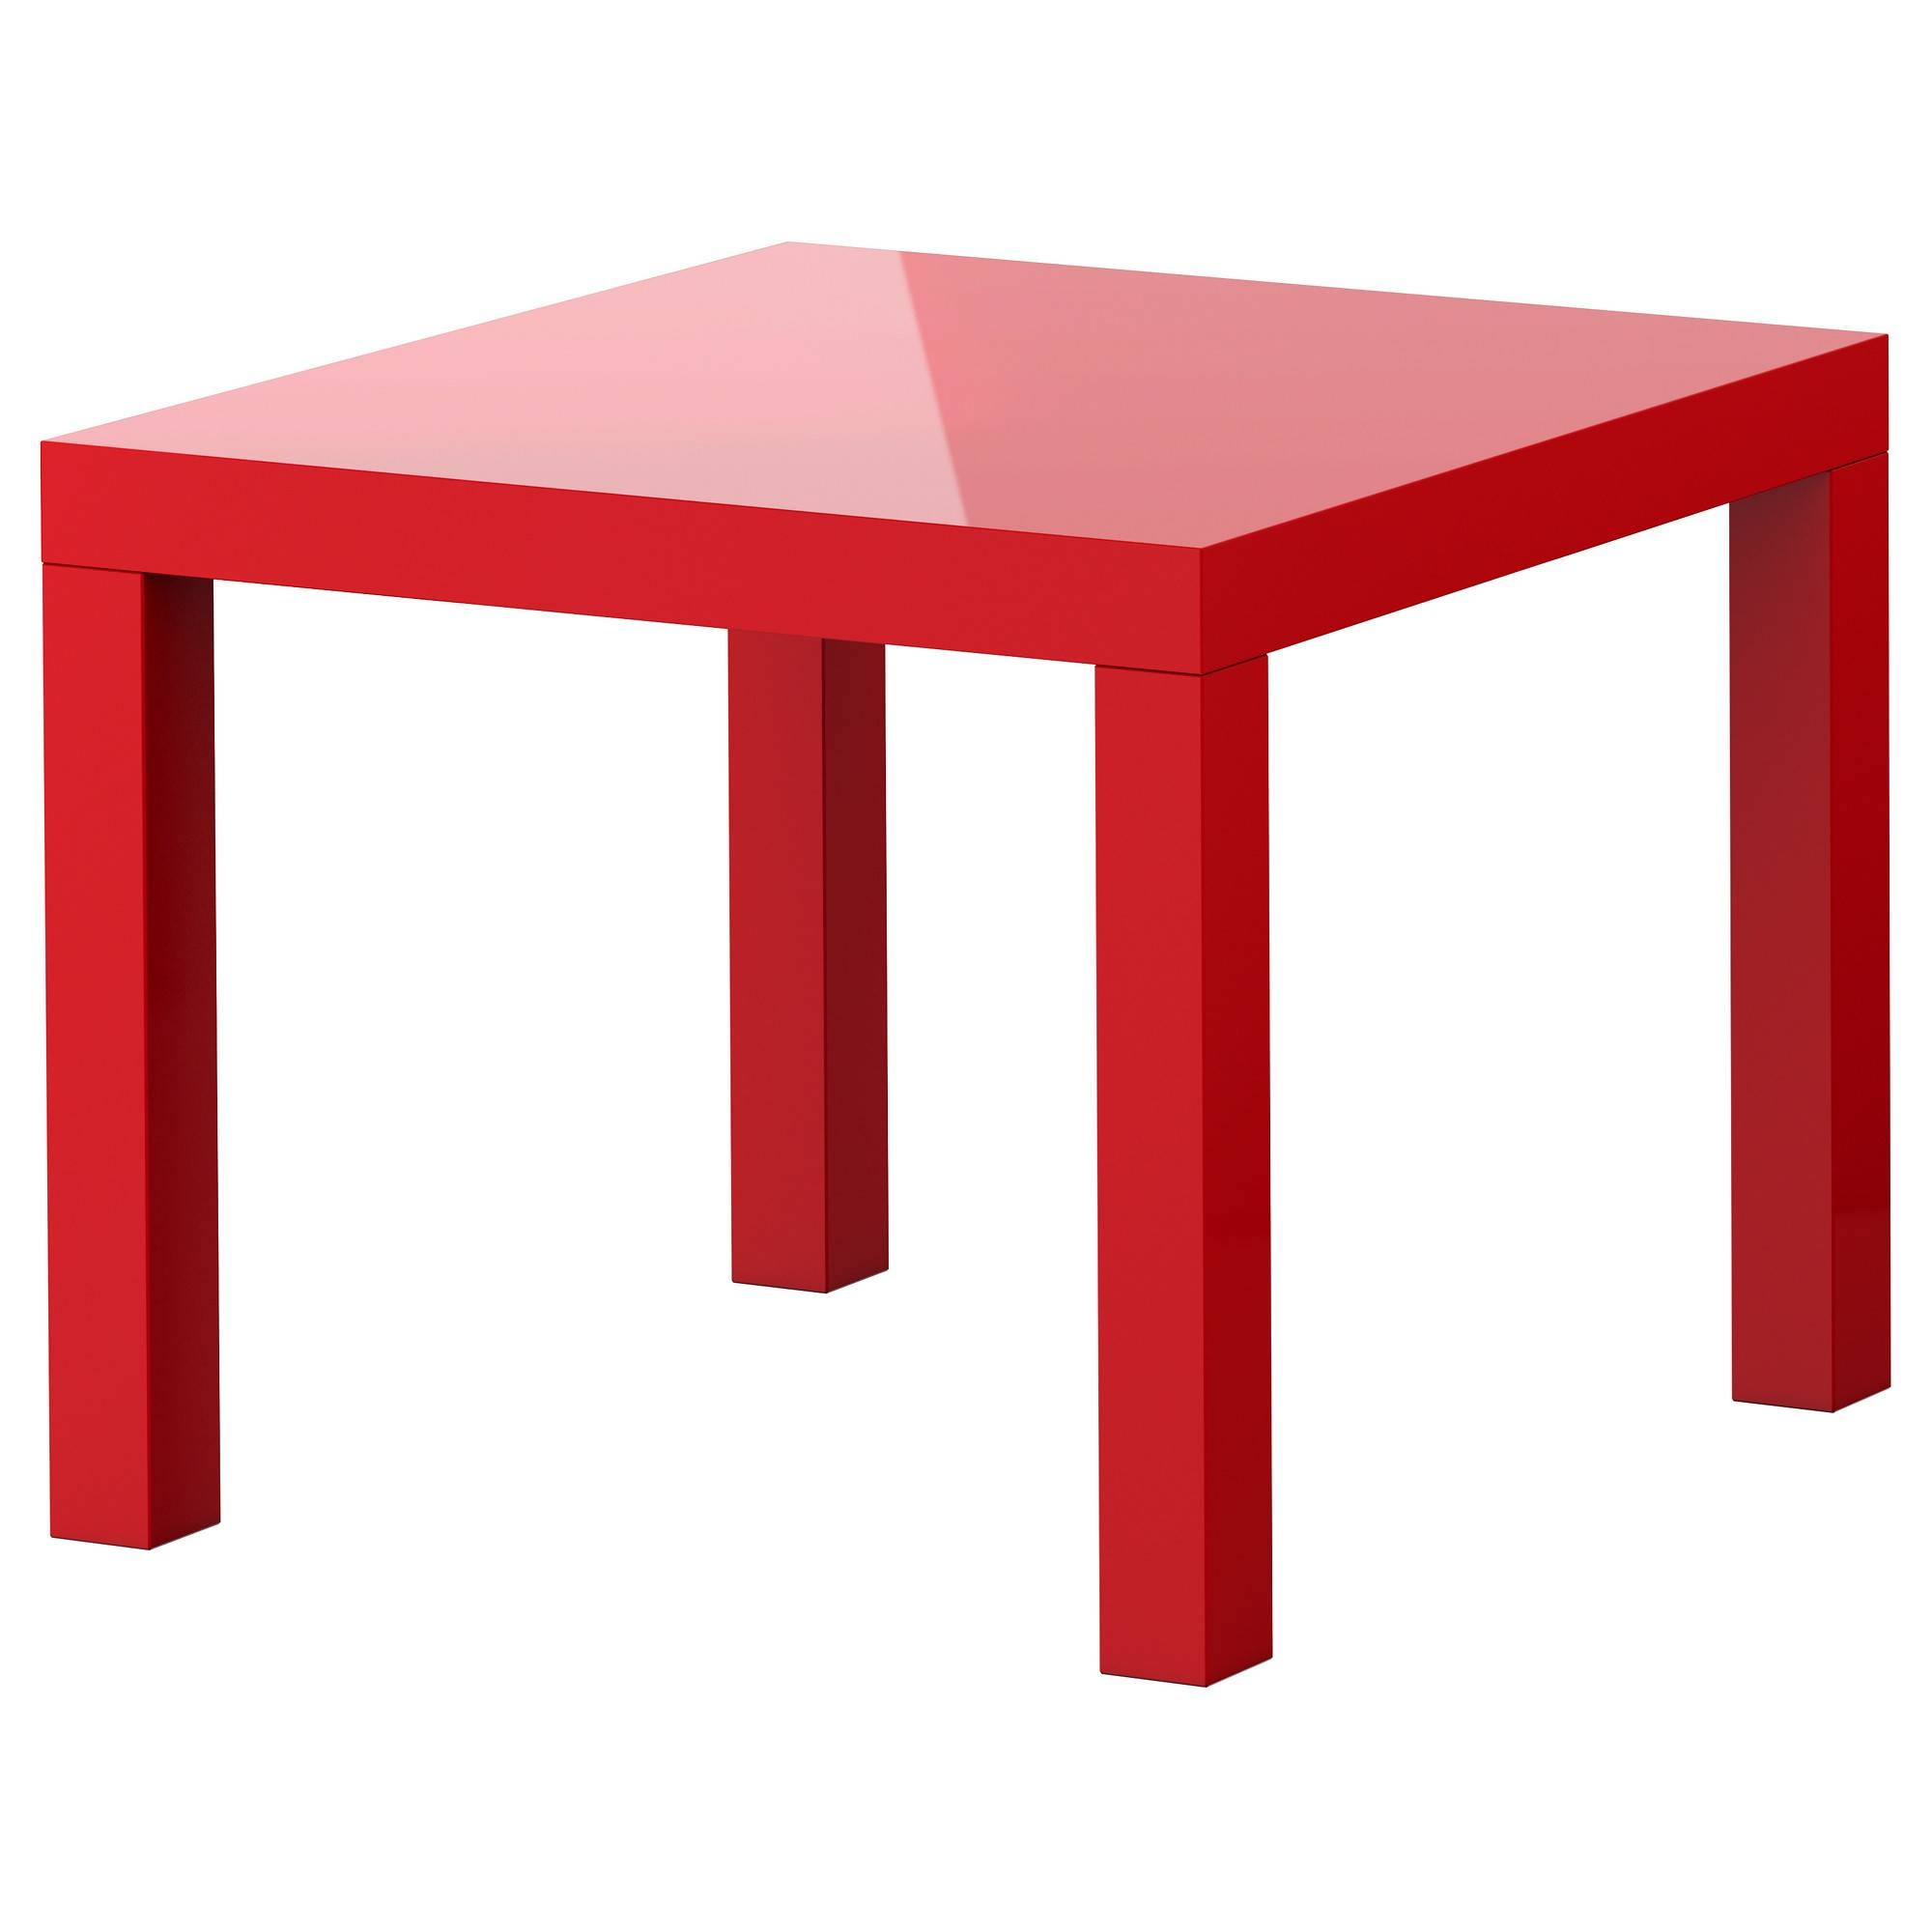 Coffee Tables & Console Tables - Ikea for Round Red Coffee Tables (Image 5 of 30)